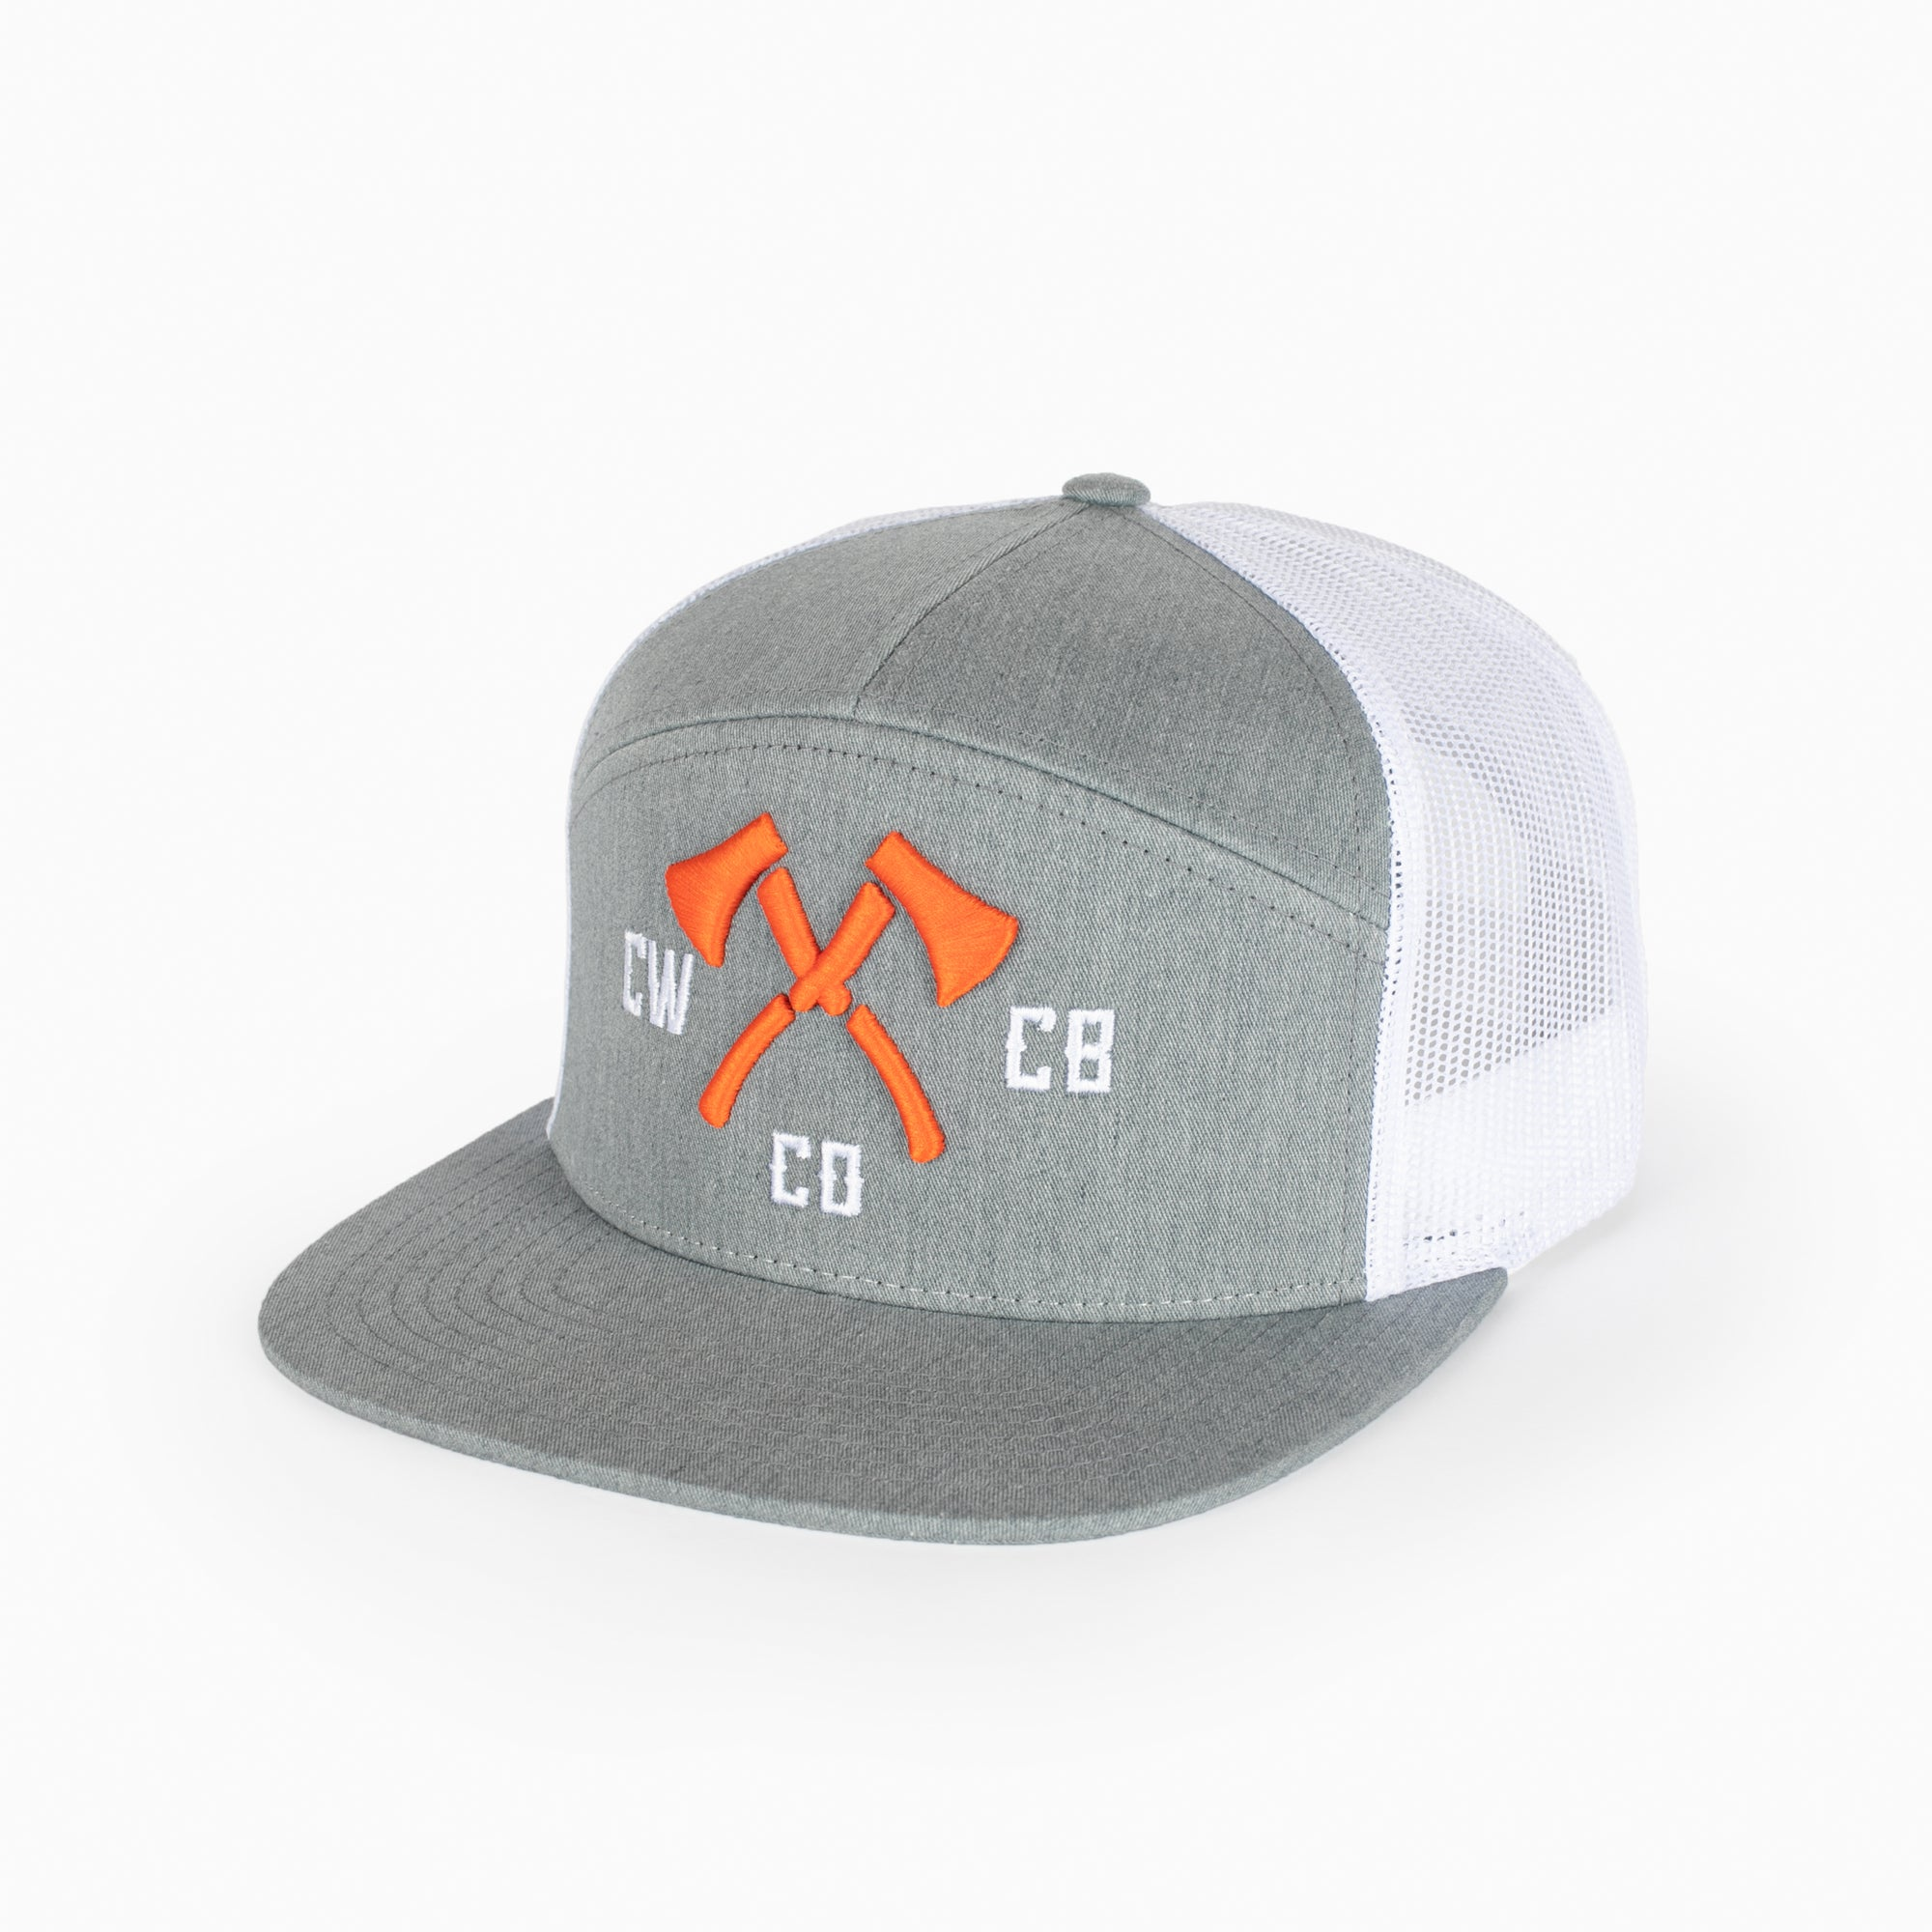 CW Embroidered Hat 7 Panel Trucker